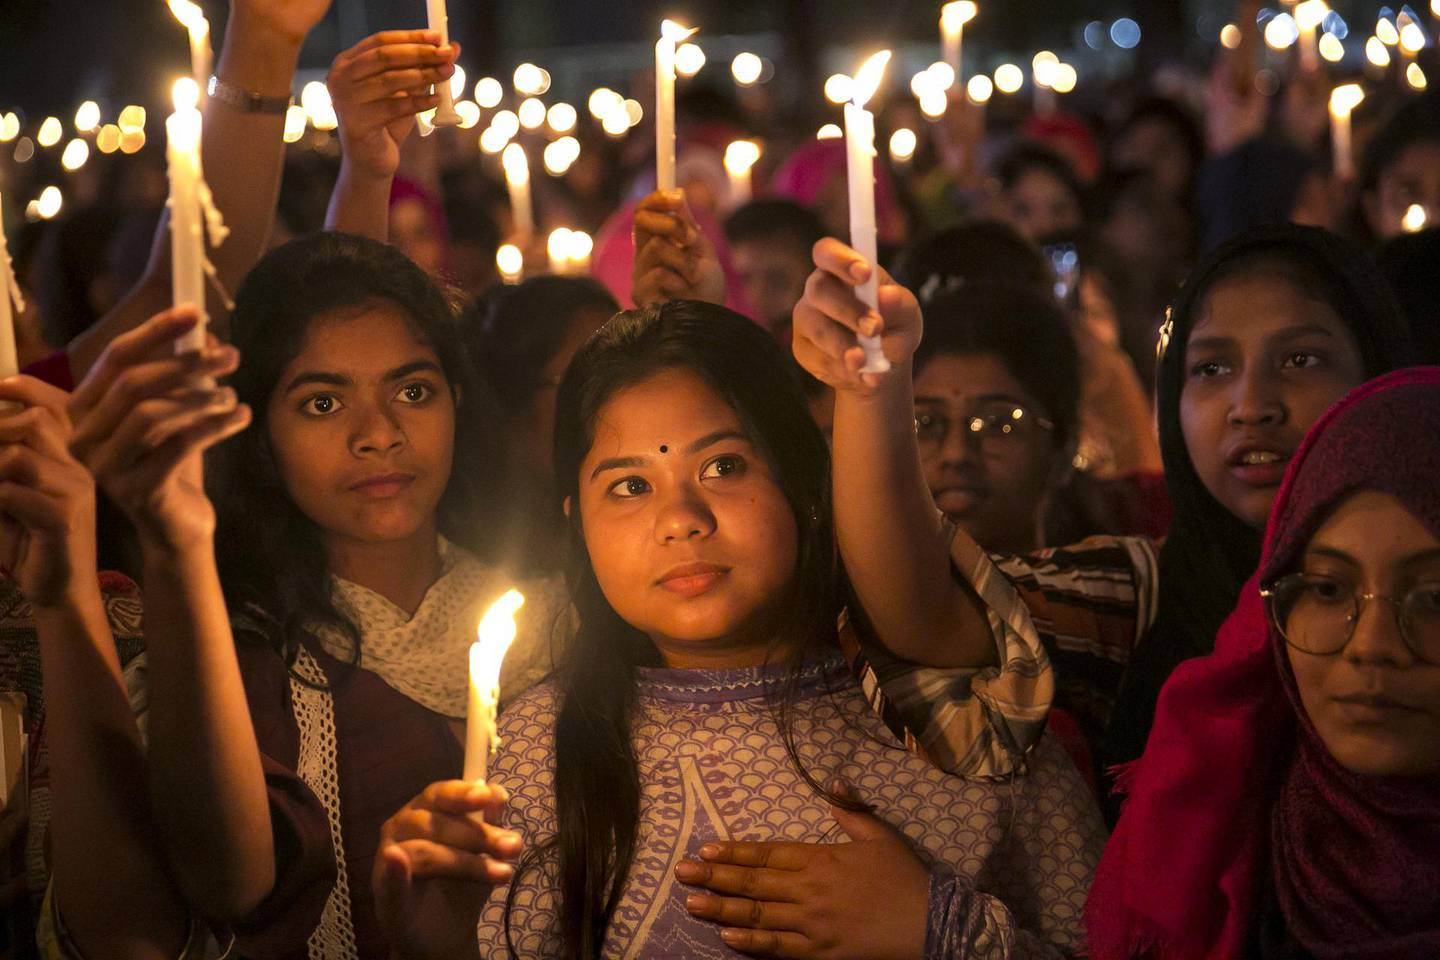 DHAKA, BANGLADESH - MARCH 08: Women attend a candlelight vigil in the early hours of March 8, 2020 in Dhaka, Bangladesh. International Women's Day is observed on March 8 every year, celebrating the achievements of women around the world. (Photo by Allison Joyce/Getty Images) *** BESTPIX ***